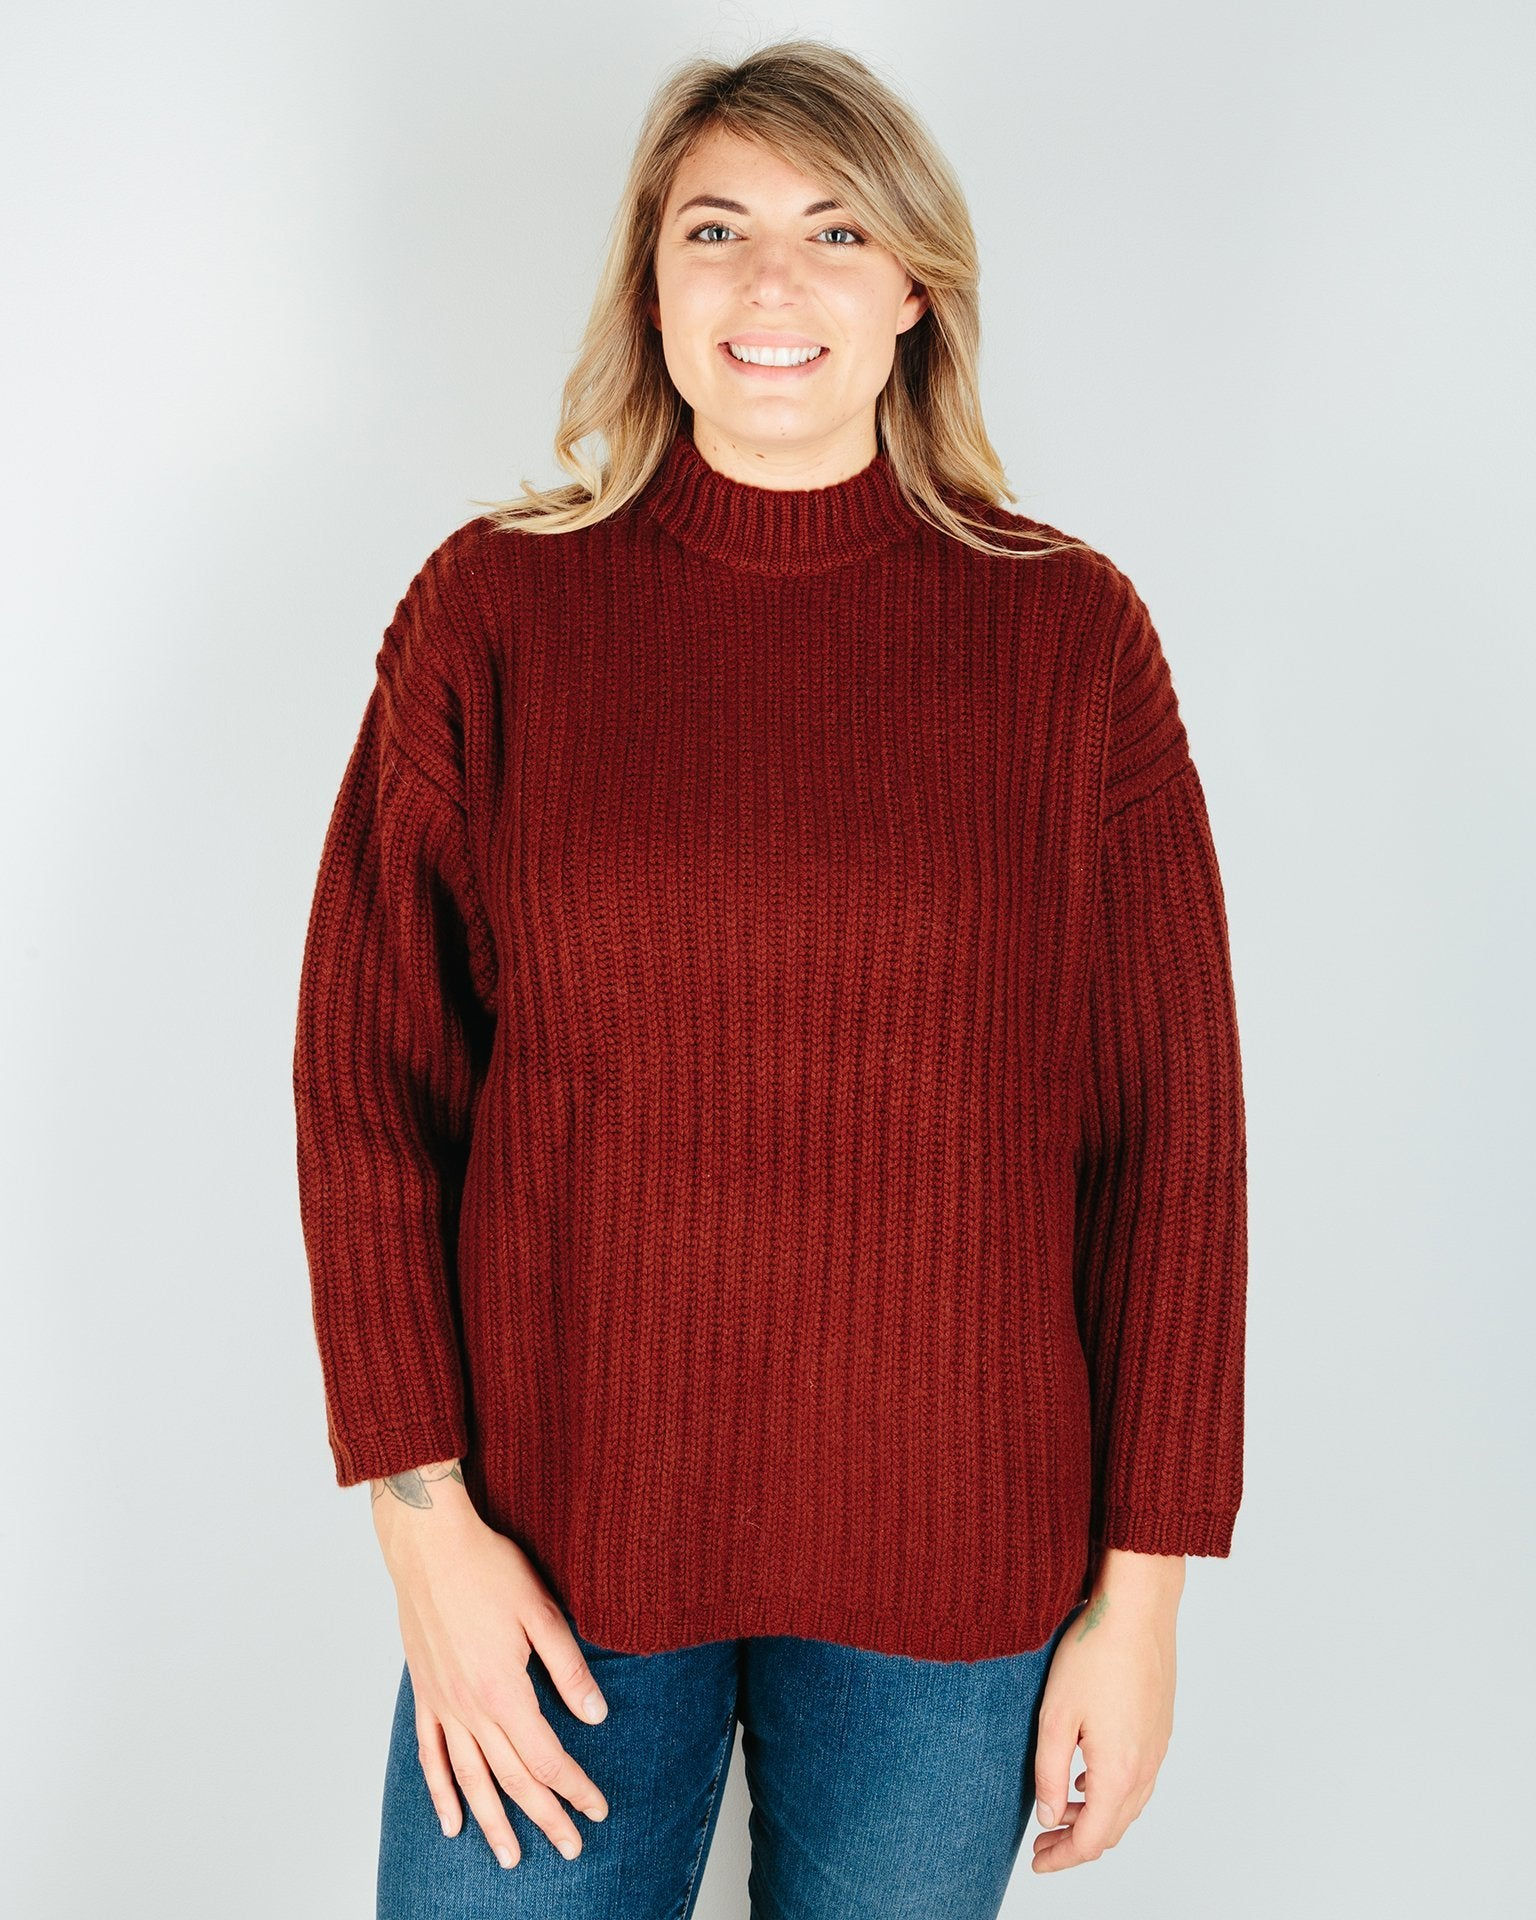 Demylee Clothing Sharon Sweater in Firewood